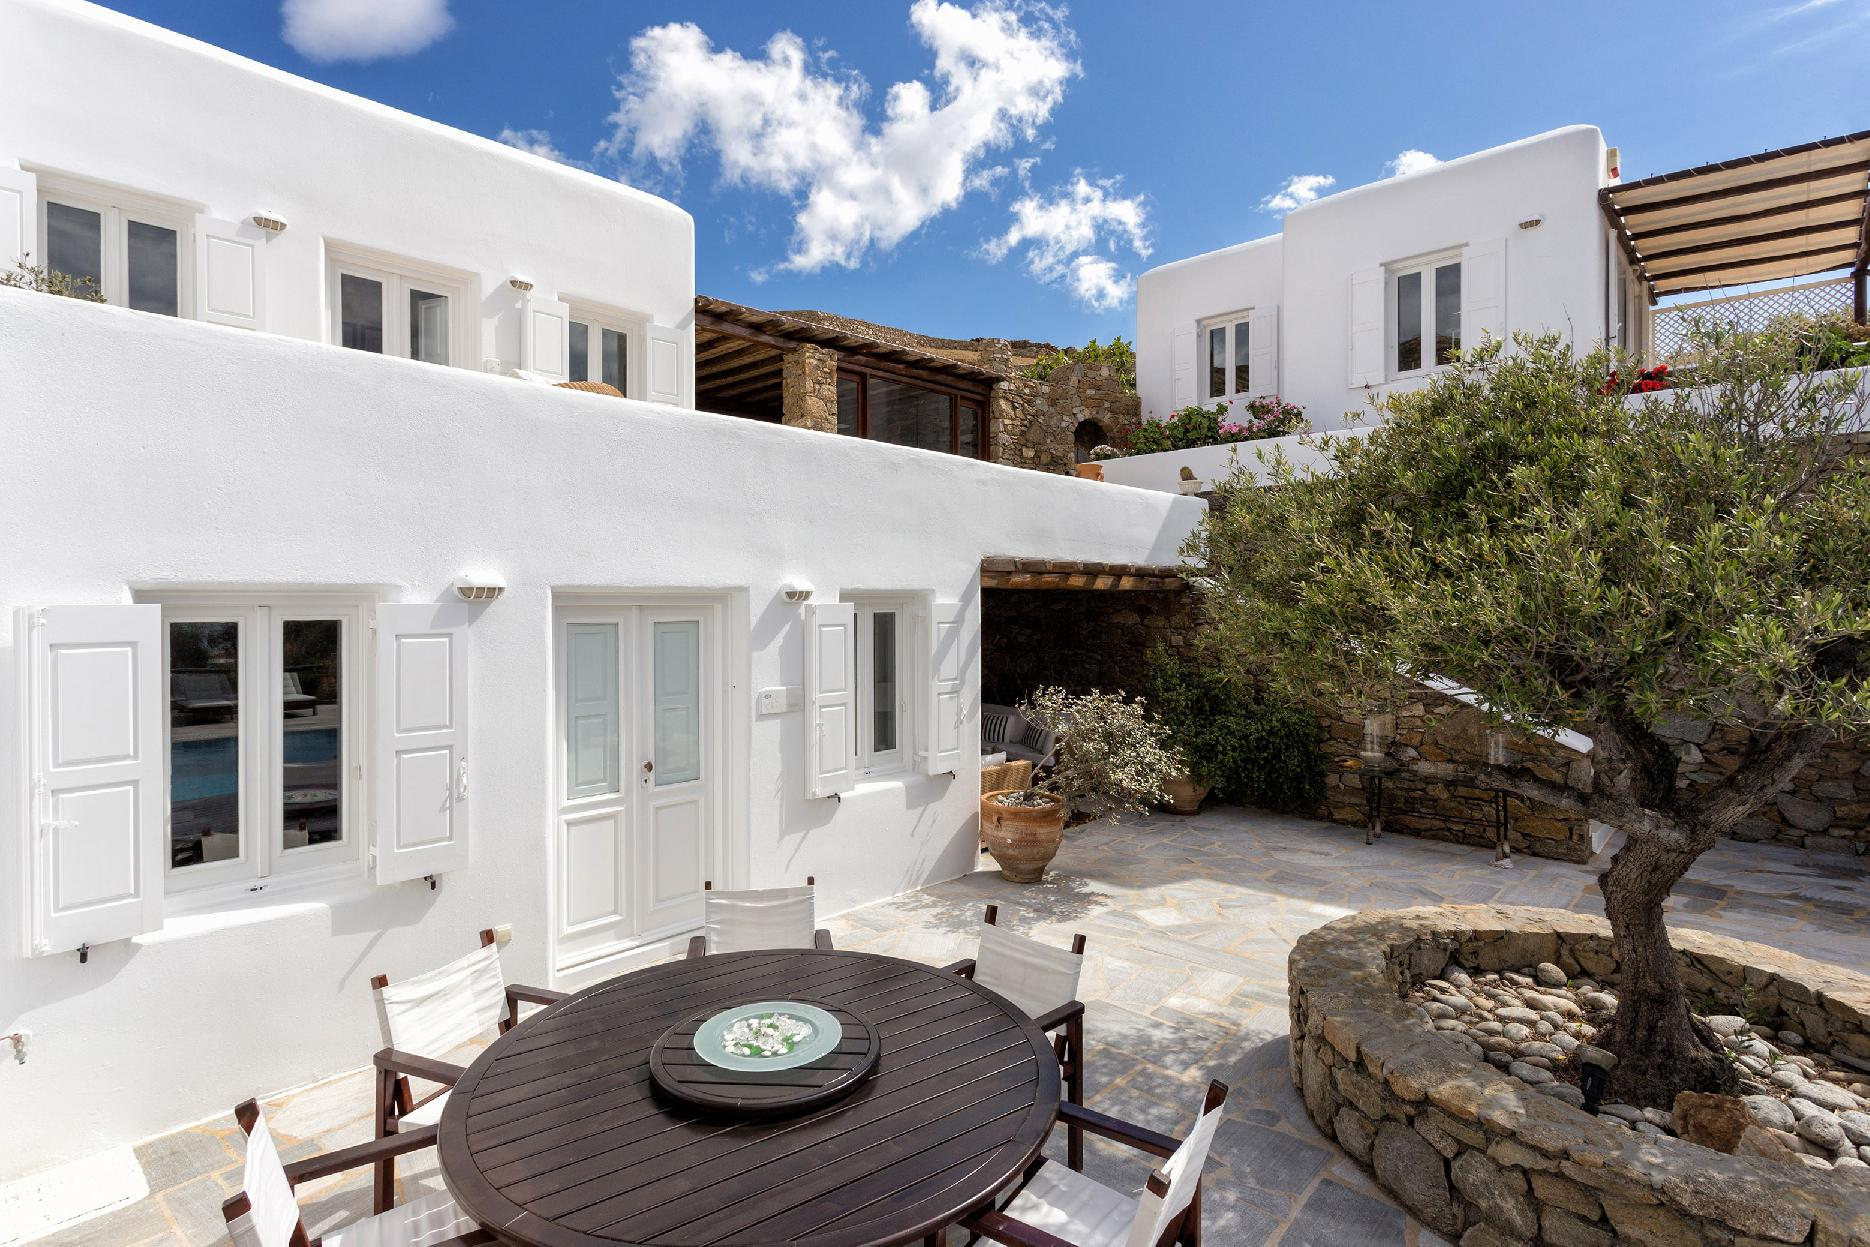 Apartment HOUSE OF THE MOON The Galaxy Mykonos villa photo 1411947